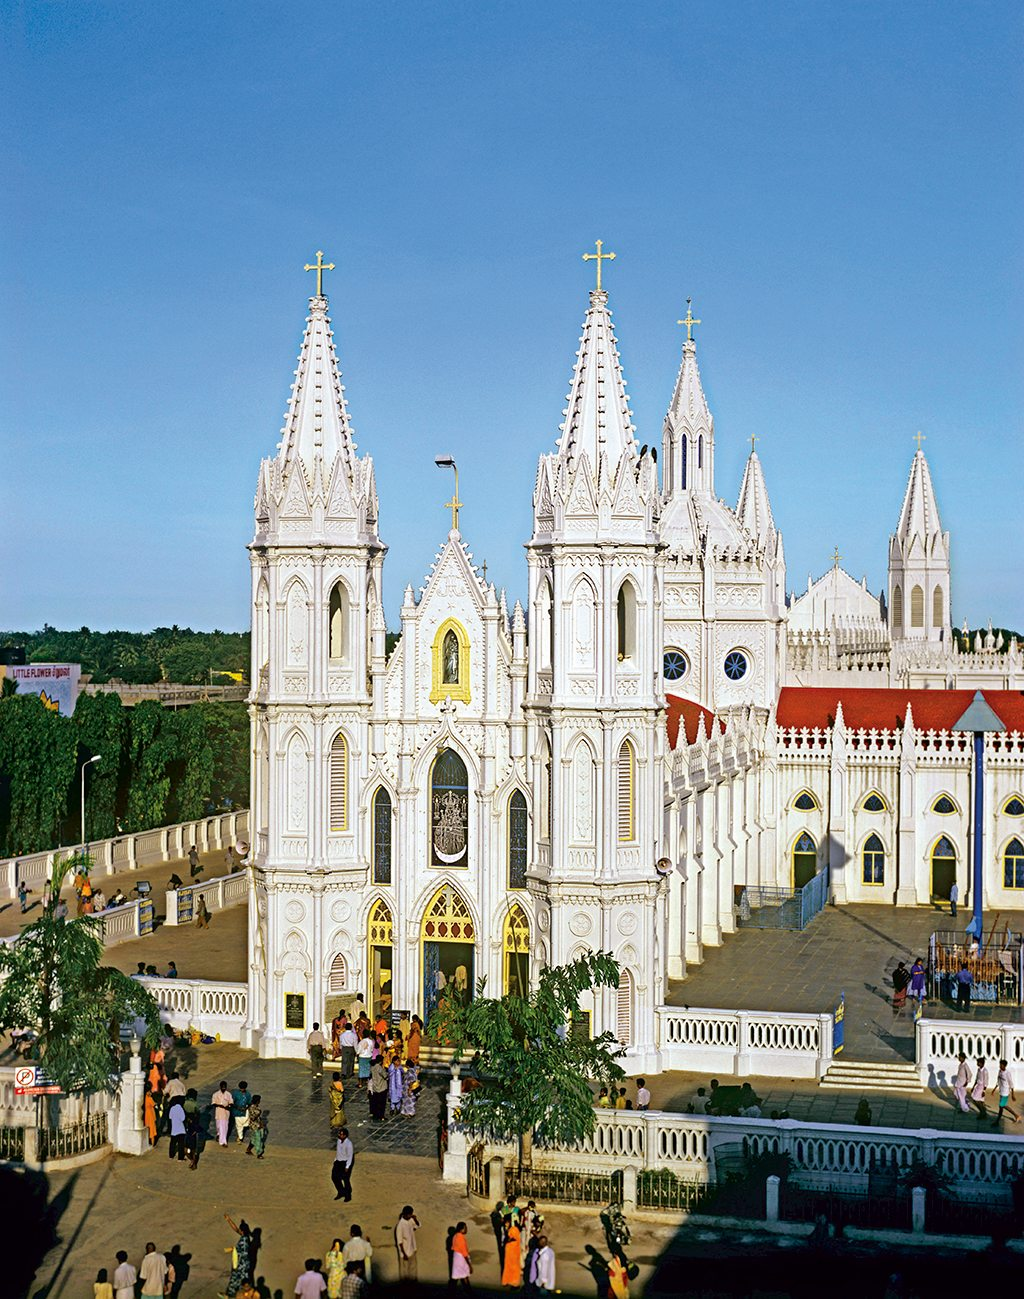 Basilica of Our Lady of Good Health Tamil Nadu